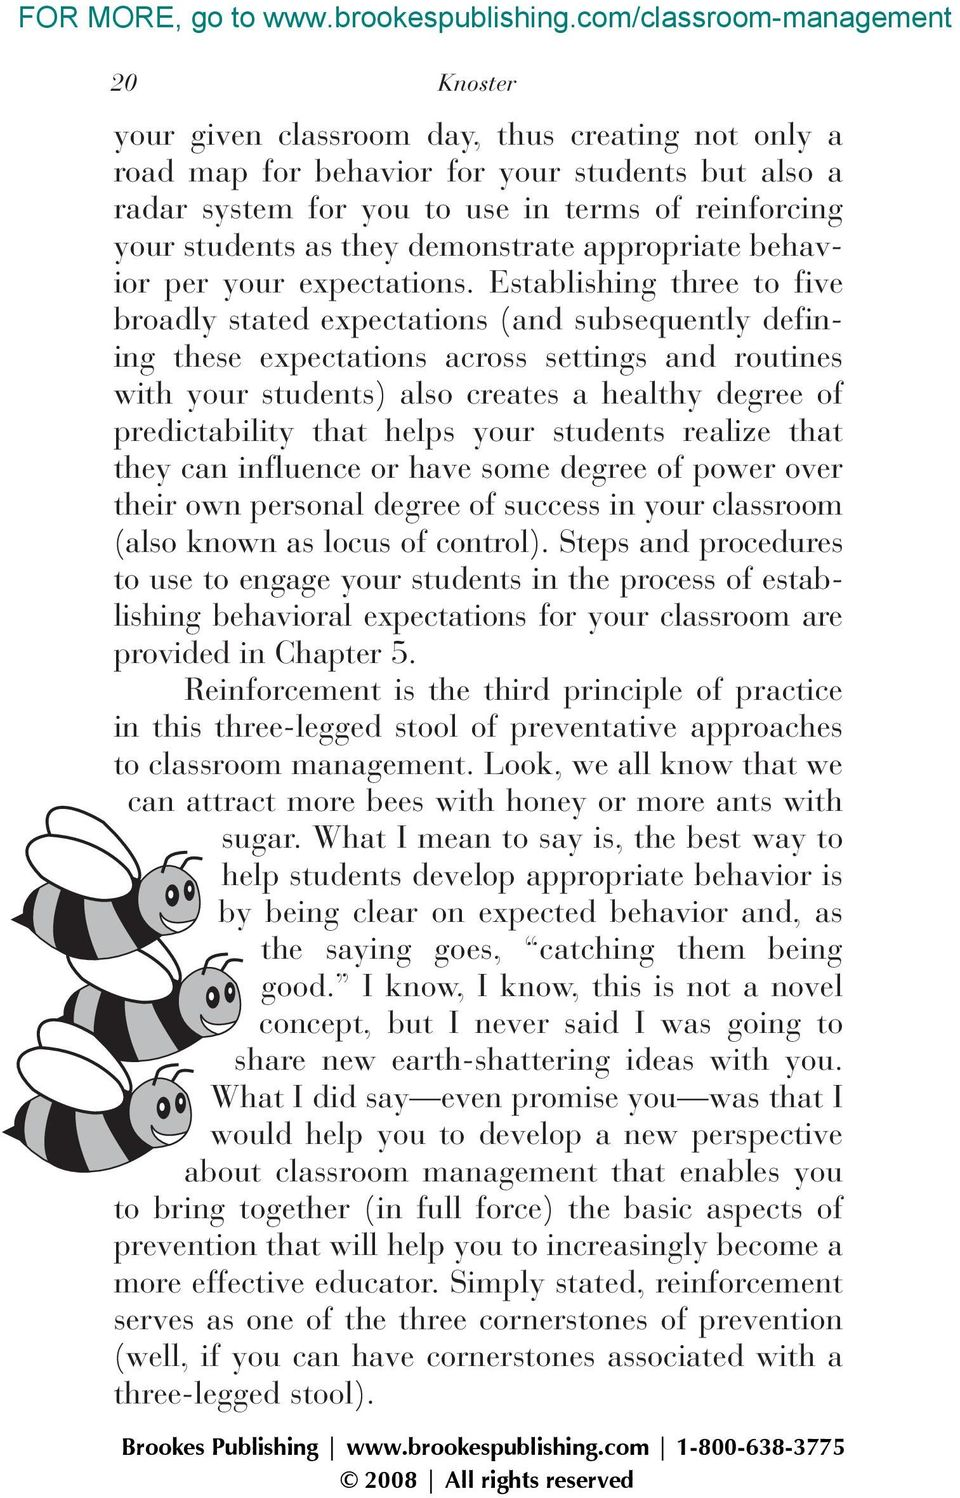 Establishing three to five broadly stated expectations (and subsequently defining these expectations across settings and routines with your students) also creates a healthy degree of predictability